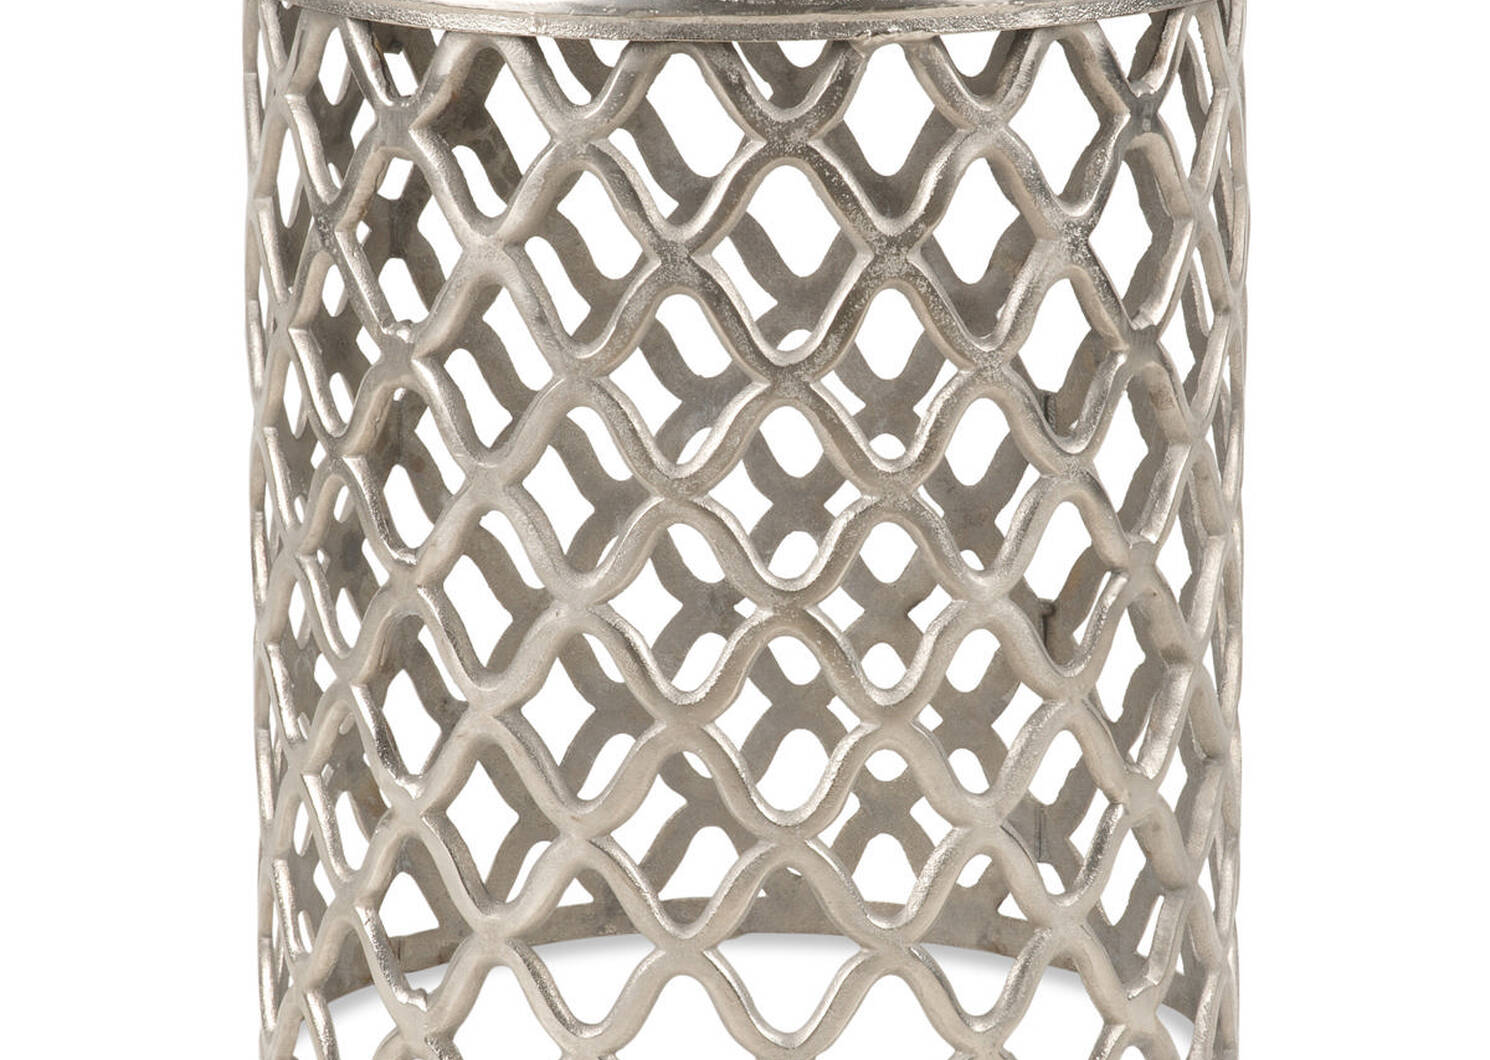 Table d'appoint Ashbury -nickel brut